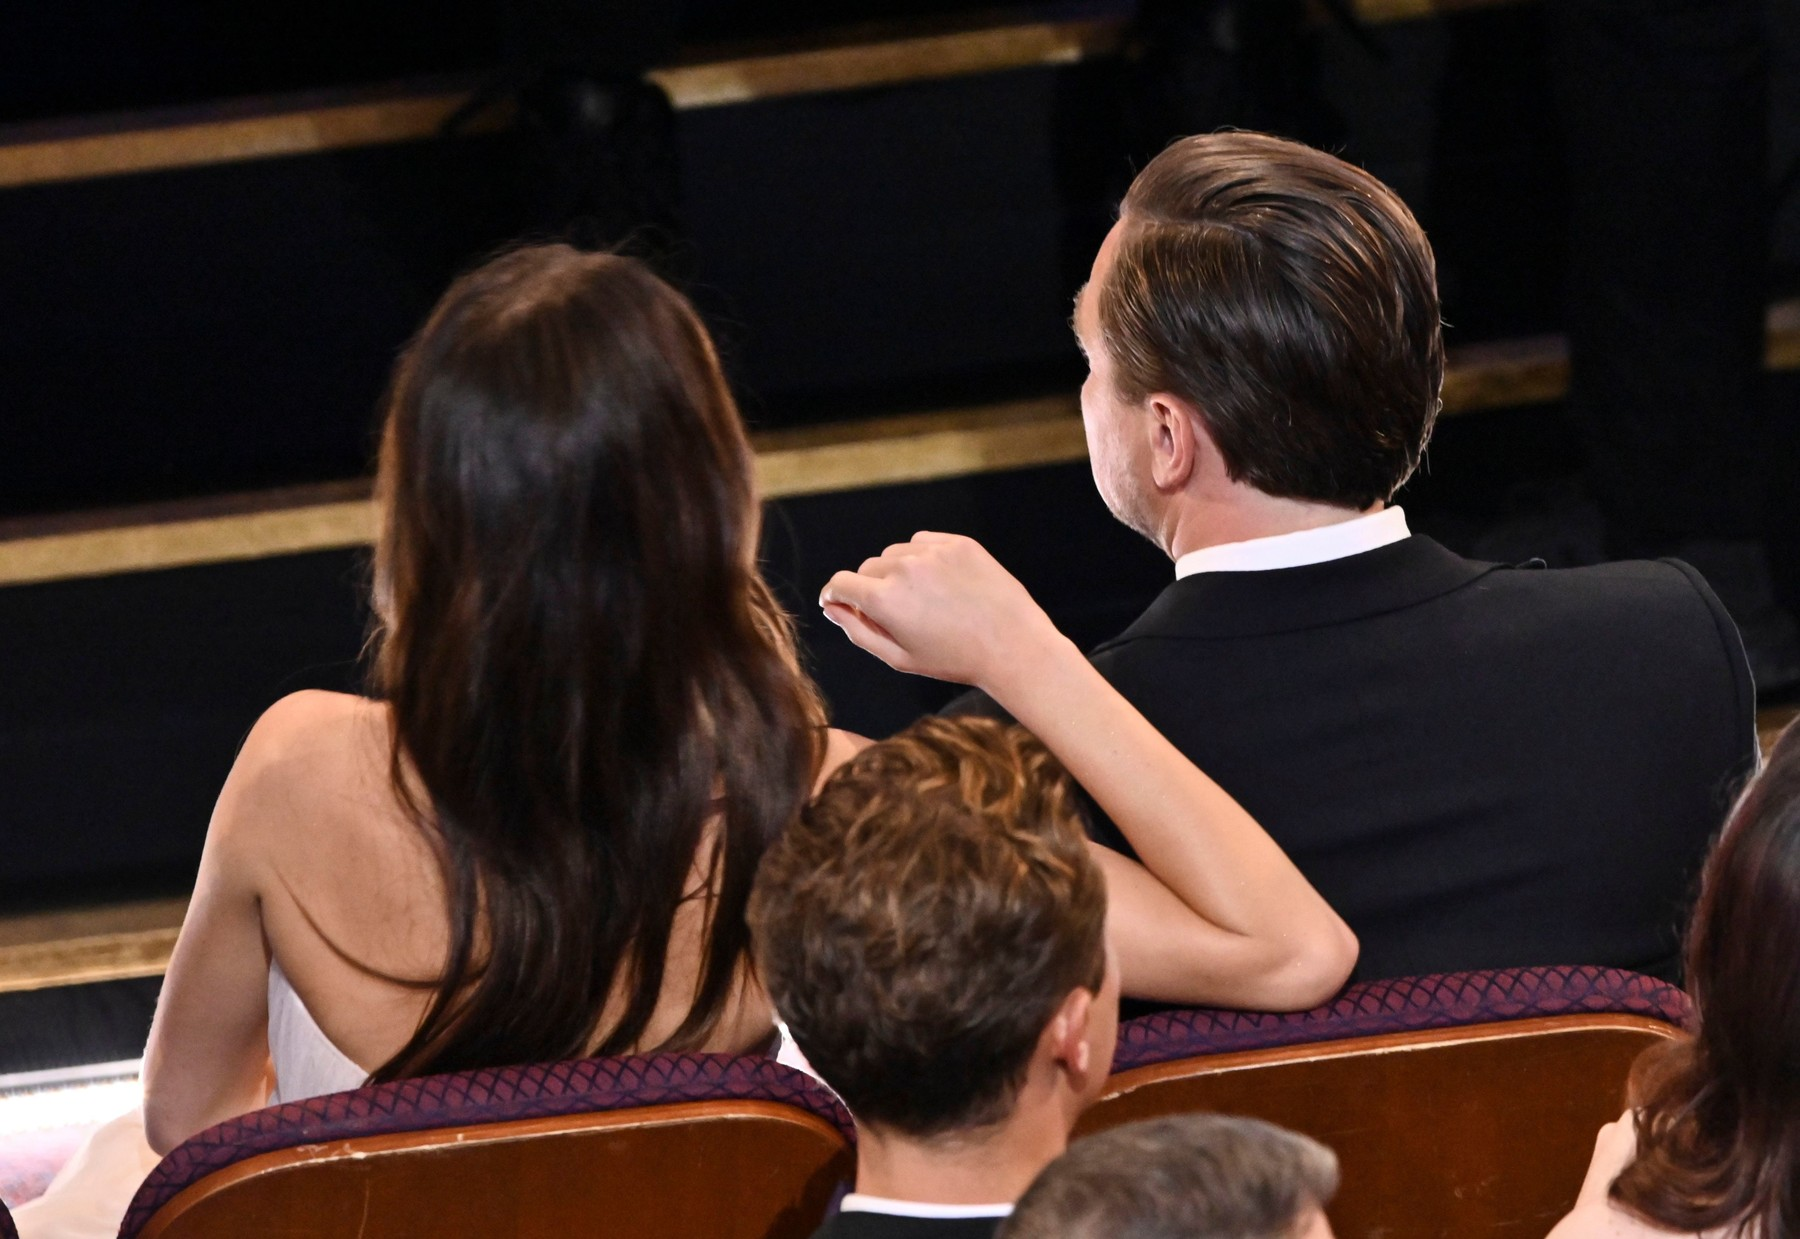 Camila Morrone and Leonardo DiCaprio 92nd Annual Academy Awards, Show, Los Angeles, USA - 09 Feb 2020, Image: 497497829, License: Rights-managed, Restrictions: , Model Release: no, Credit line: Rob Latour / Shutterstock Editorial / Profimedia